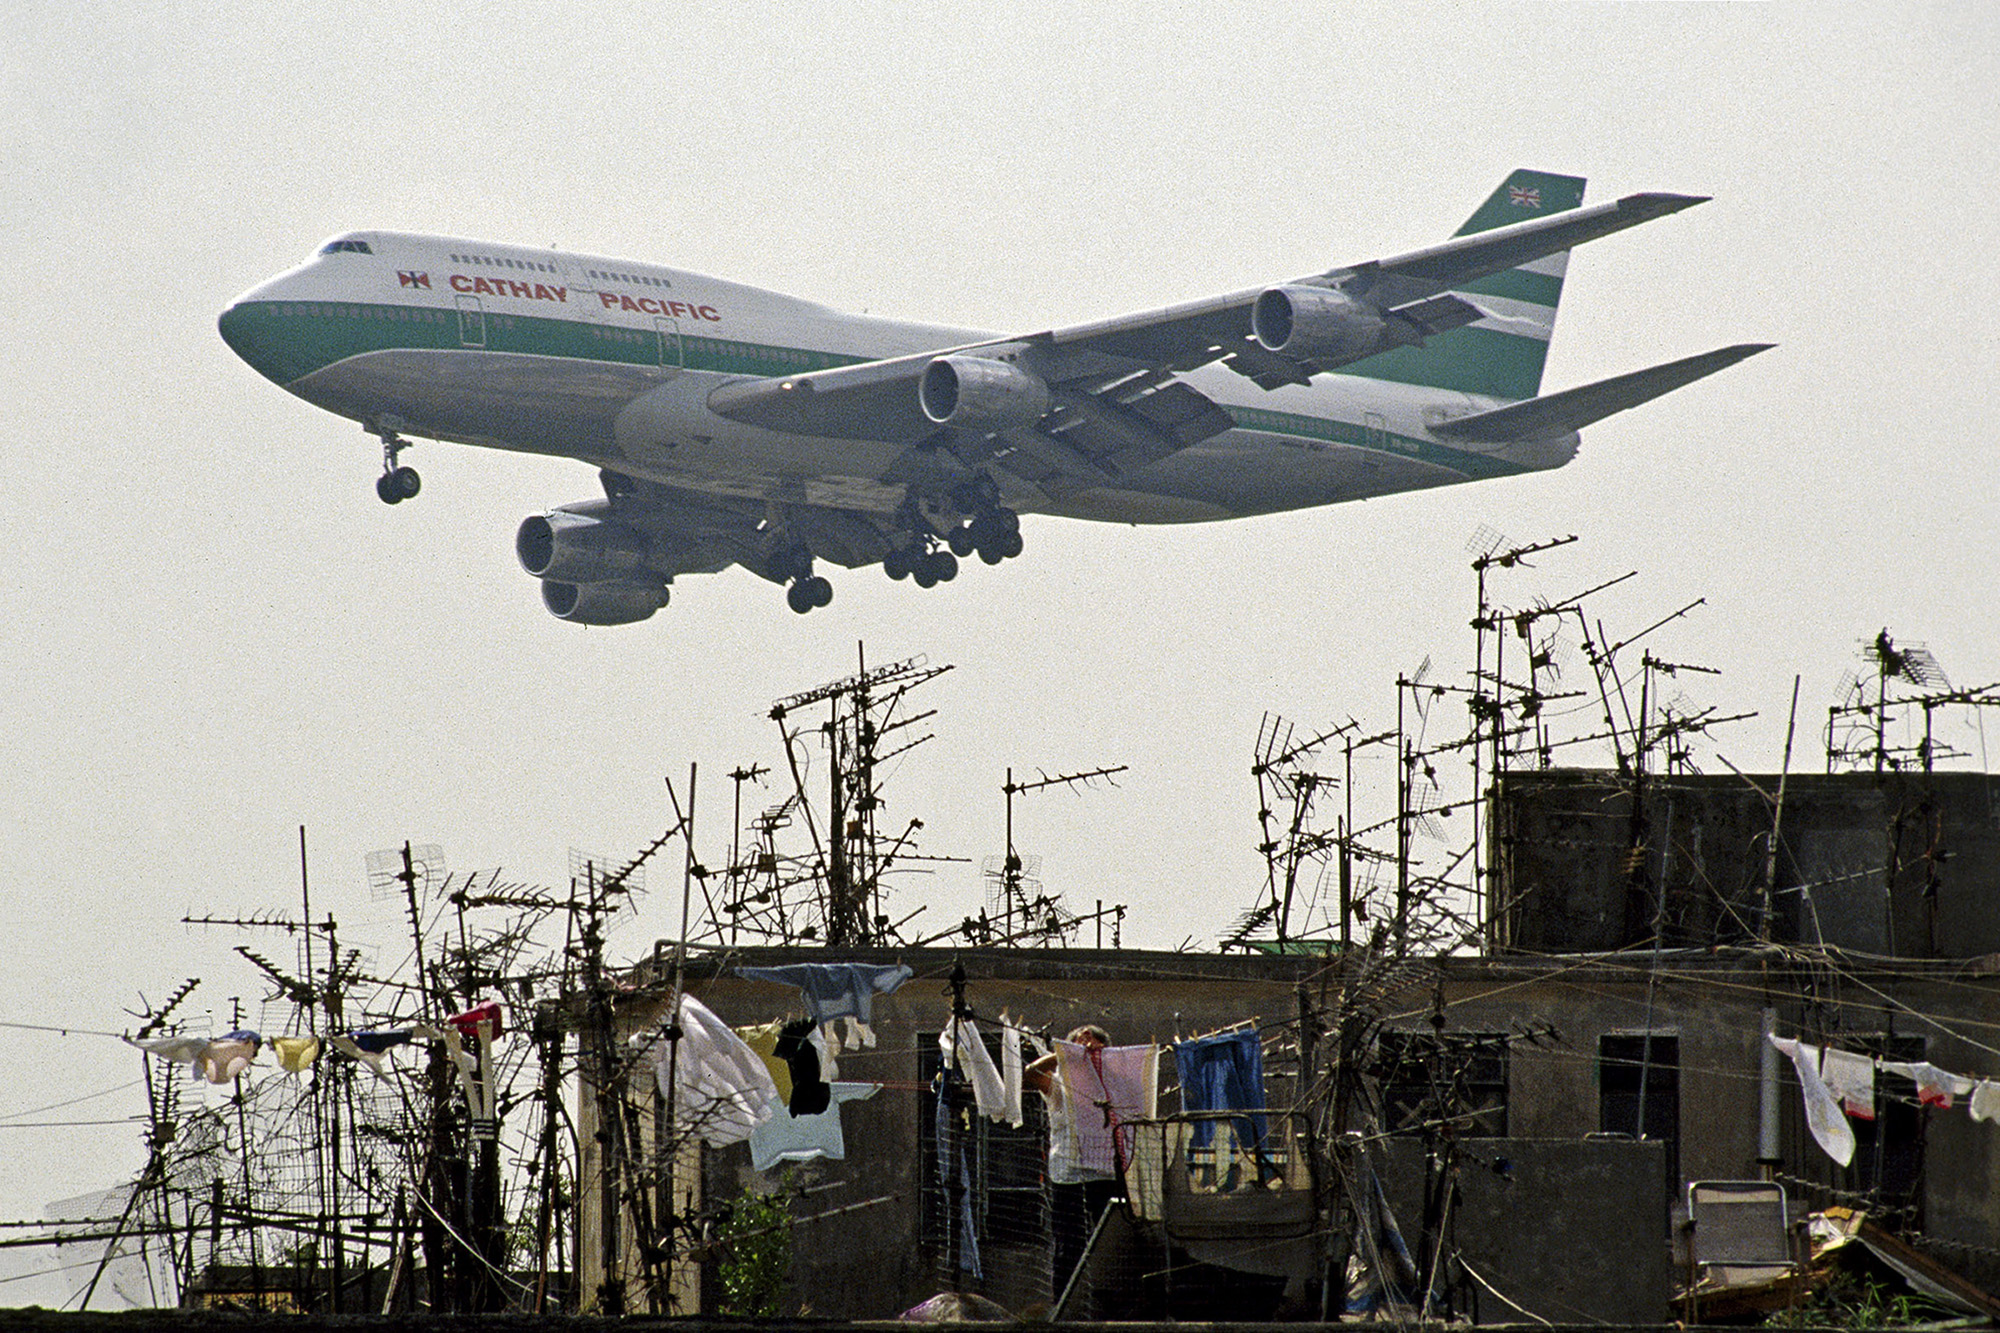 Cathay Pacific jet passing Walled City rooftops. 1989